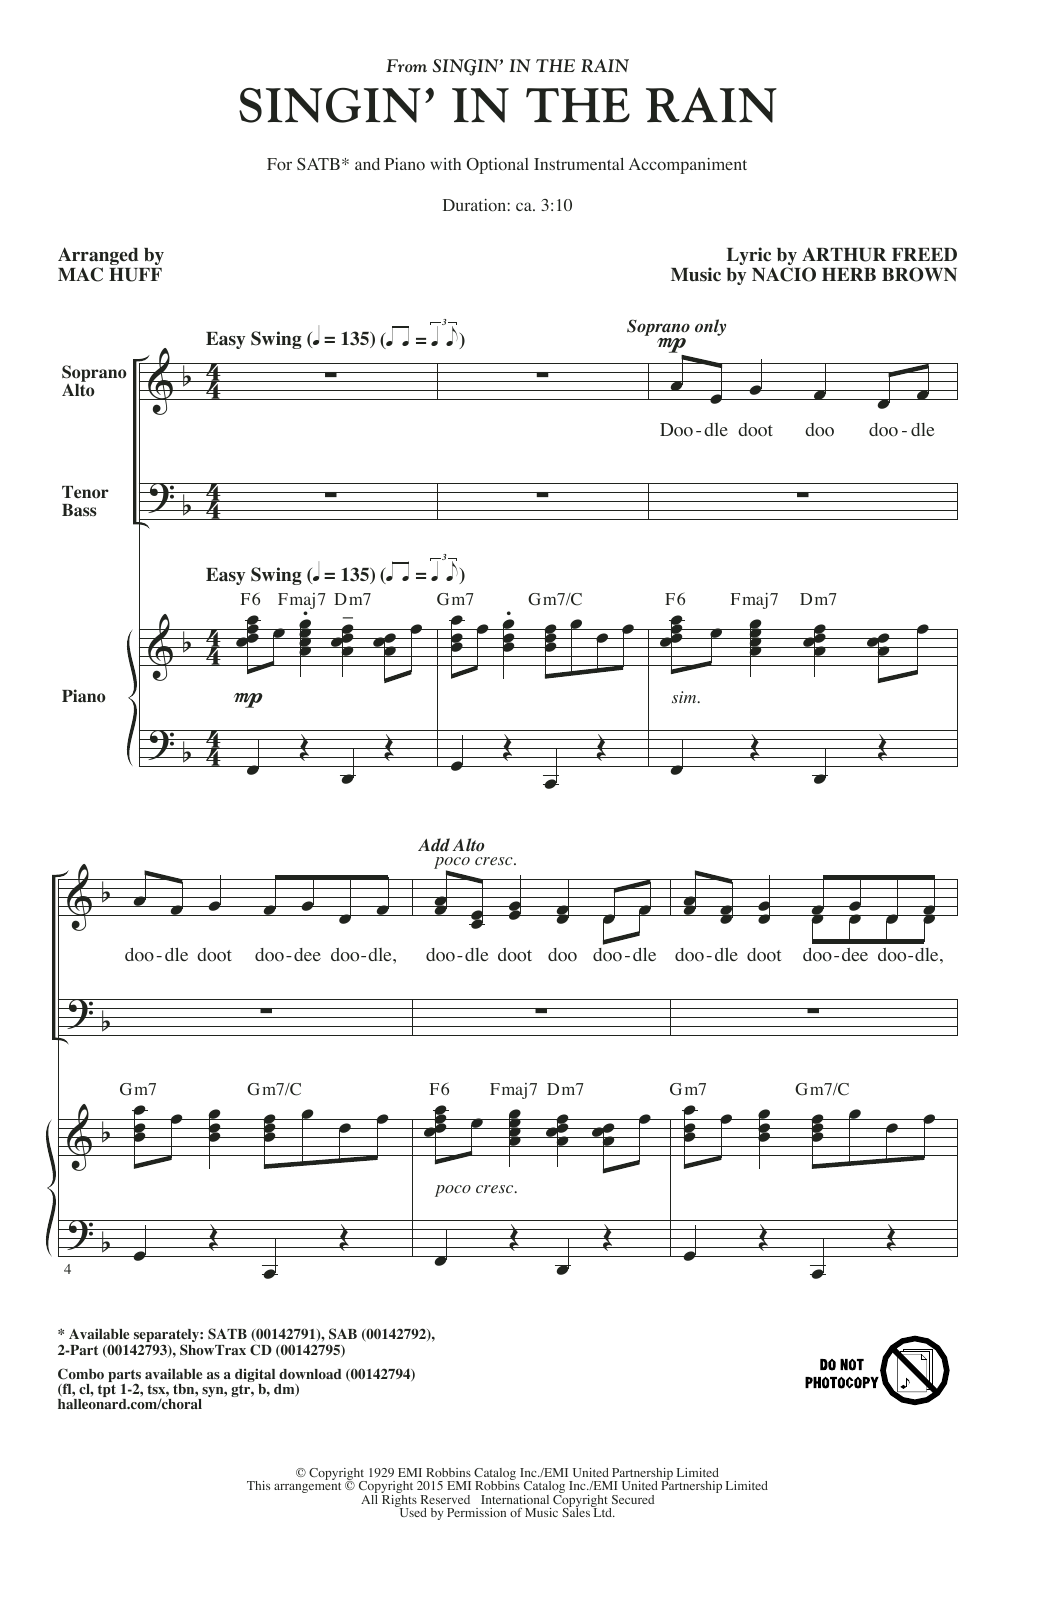 Singin' In The Rain Sheet Music